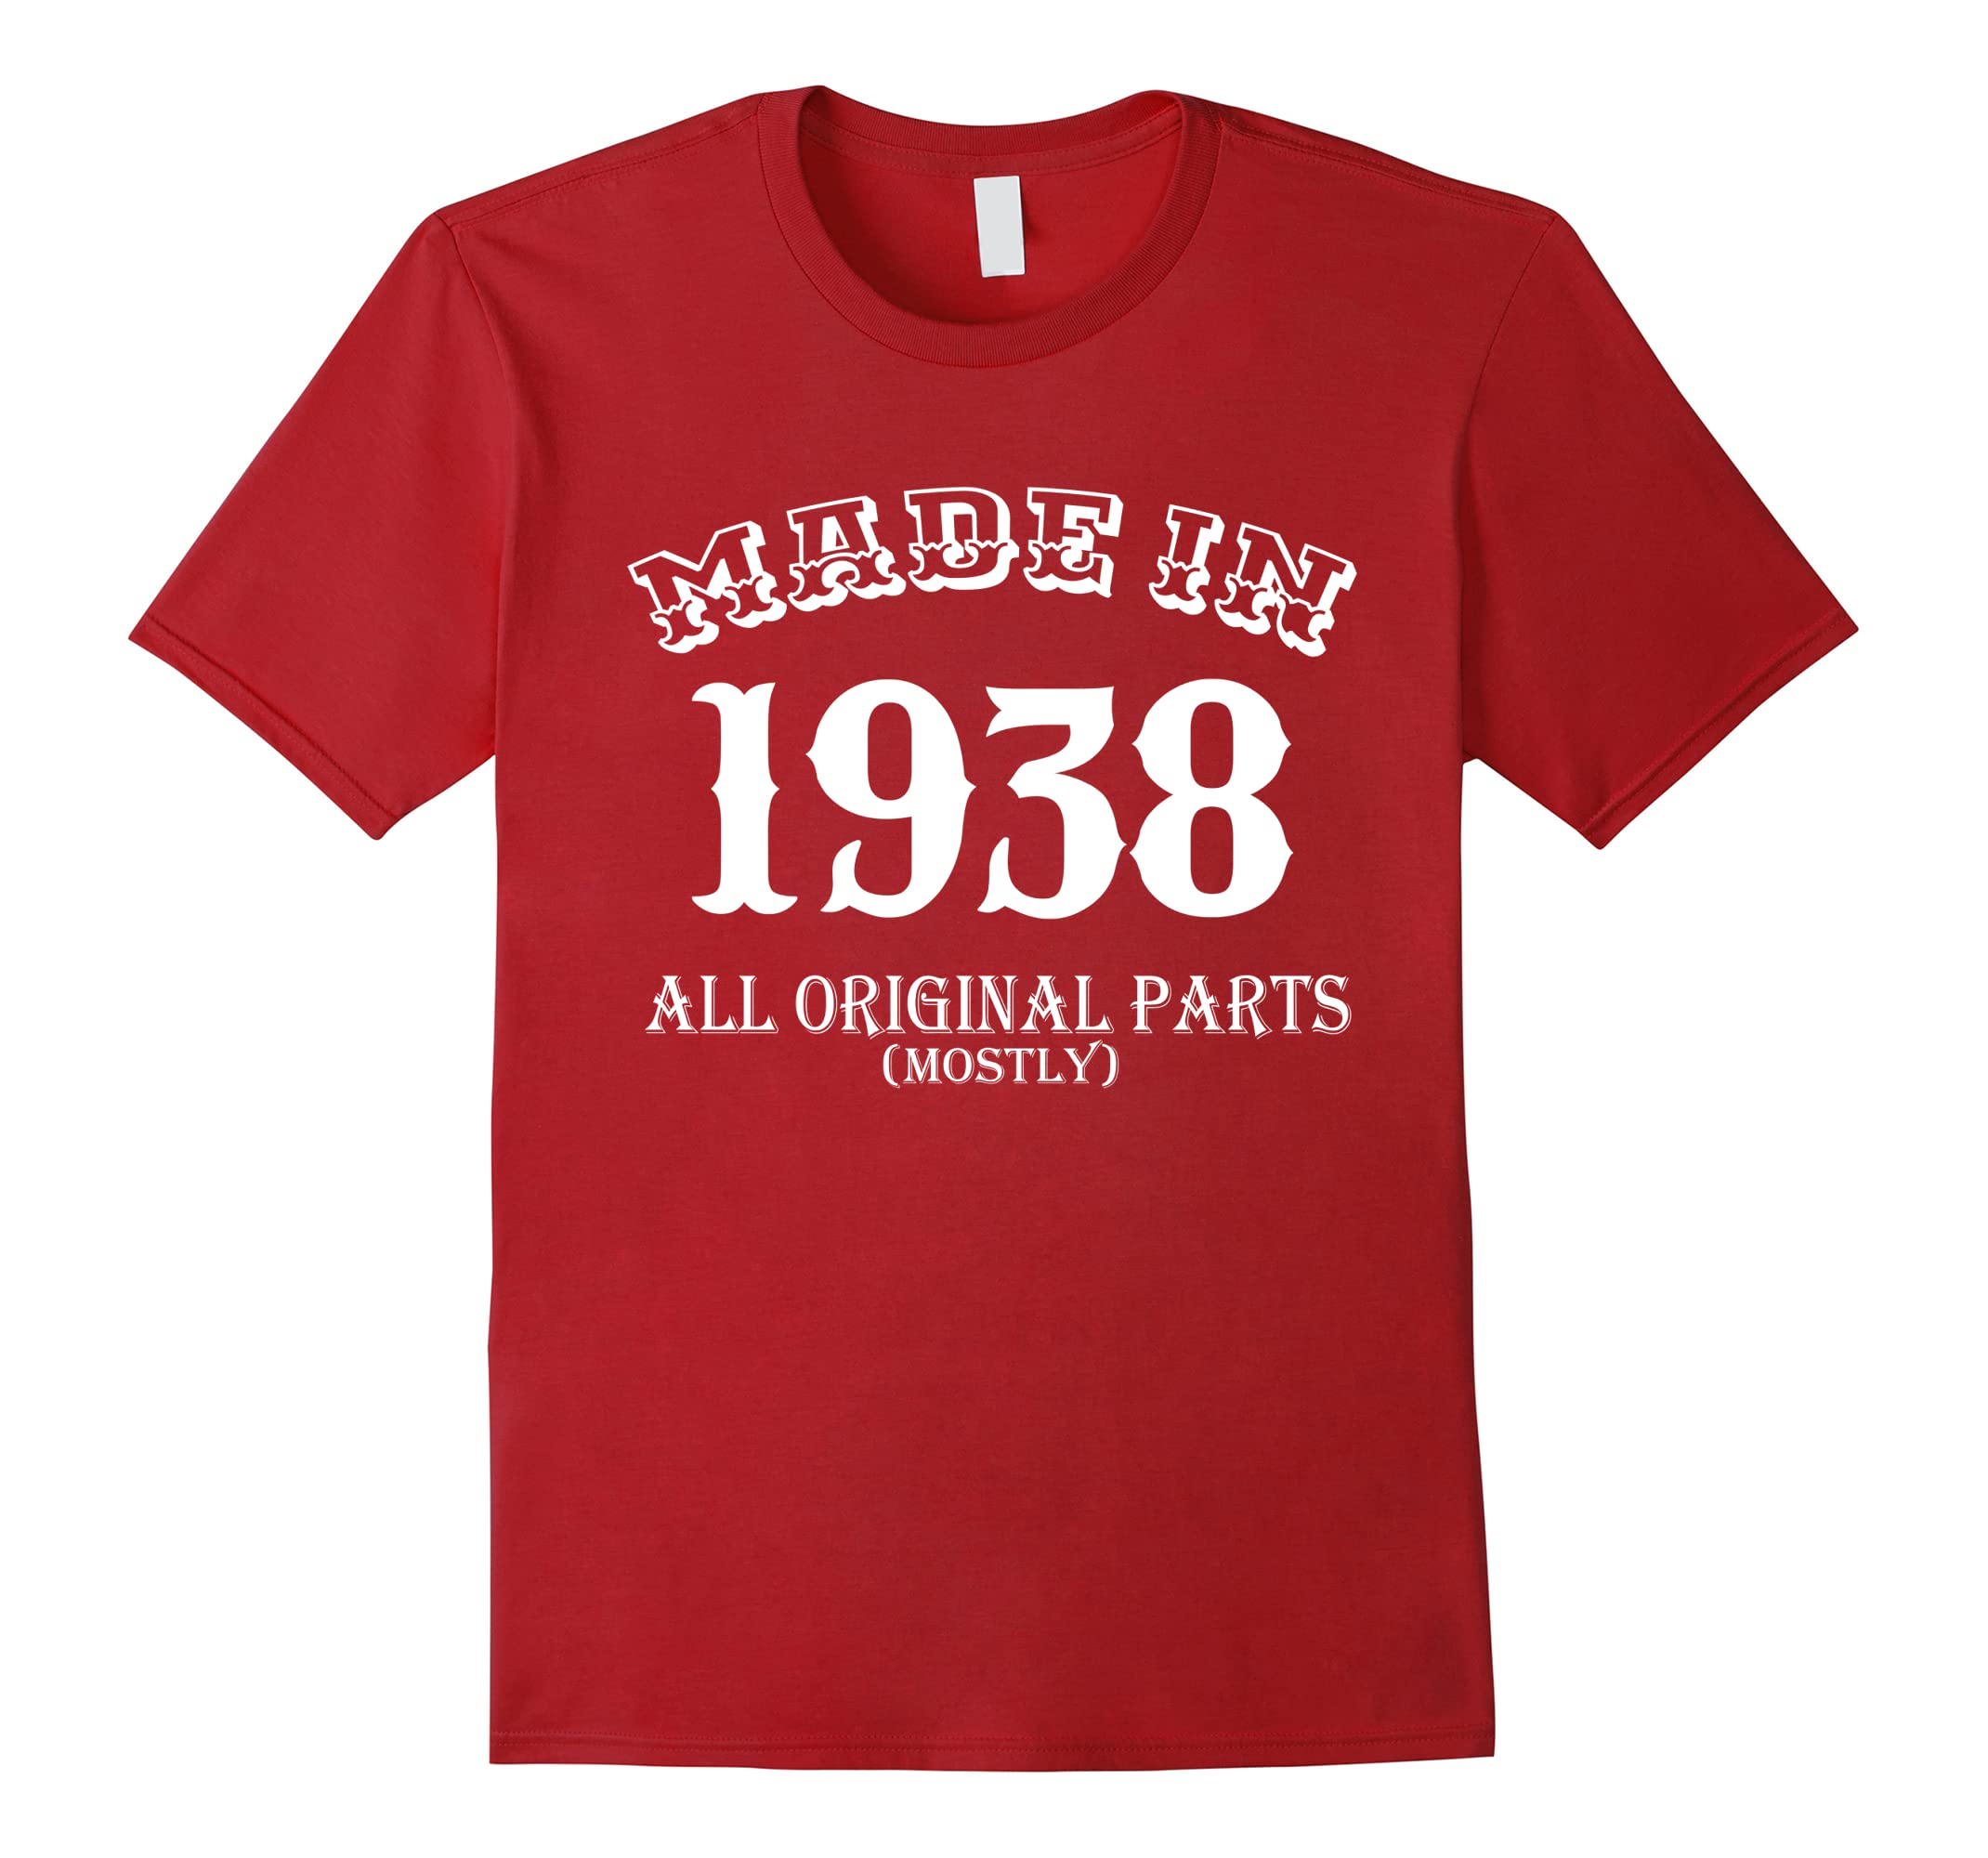 All Original Parts Birthday T Shirt